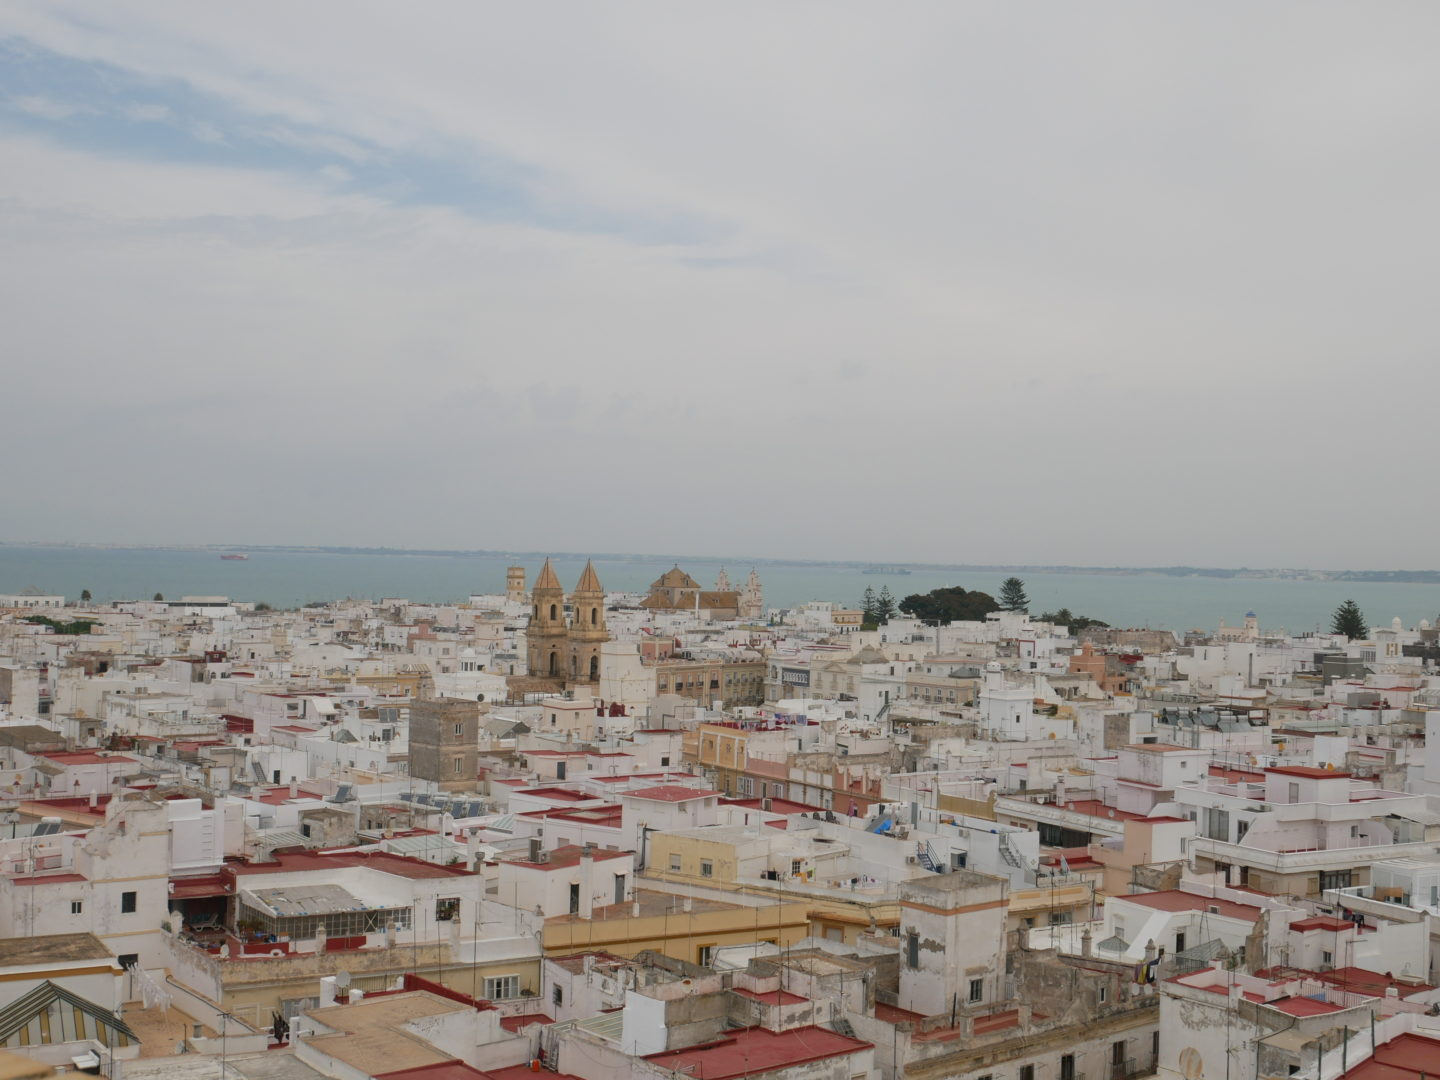 #cadiz, cadiz spain, cadiz beach, things to do cadiz, cadiz food, cadiz ciudad, cadiz playa, cadiz fotos, la caleta, cadiz catedral, cadiz instagram, cadiz photography, cadiz hotels, cadiz shopping, cadiz travel, what to do in cadiz, cadiz castles